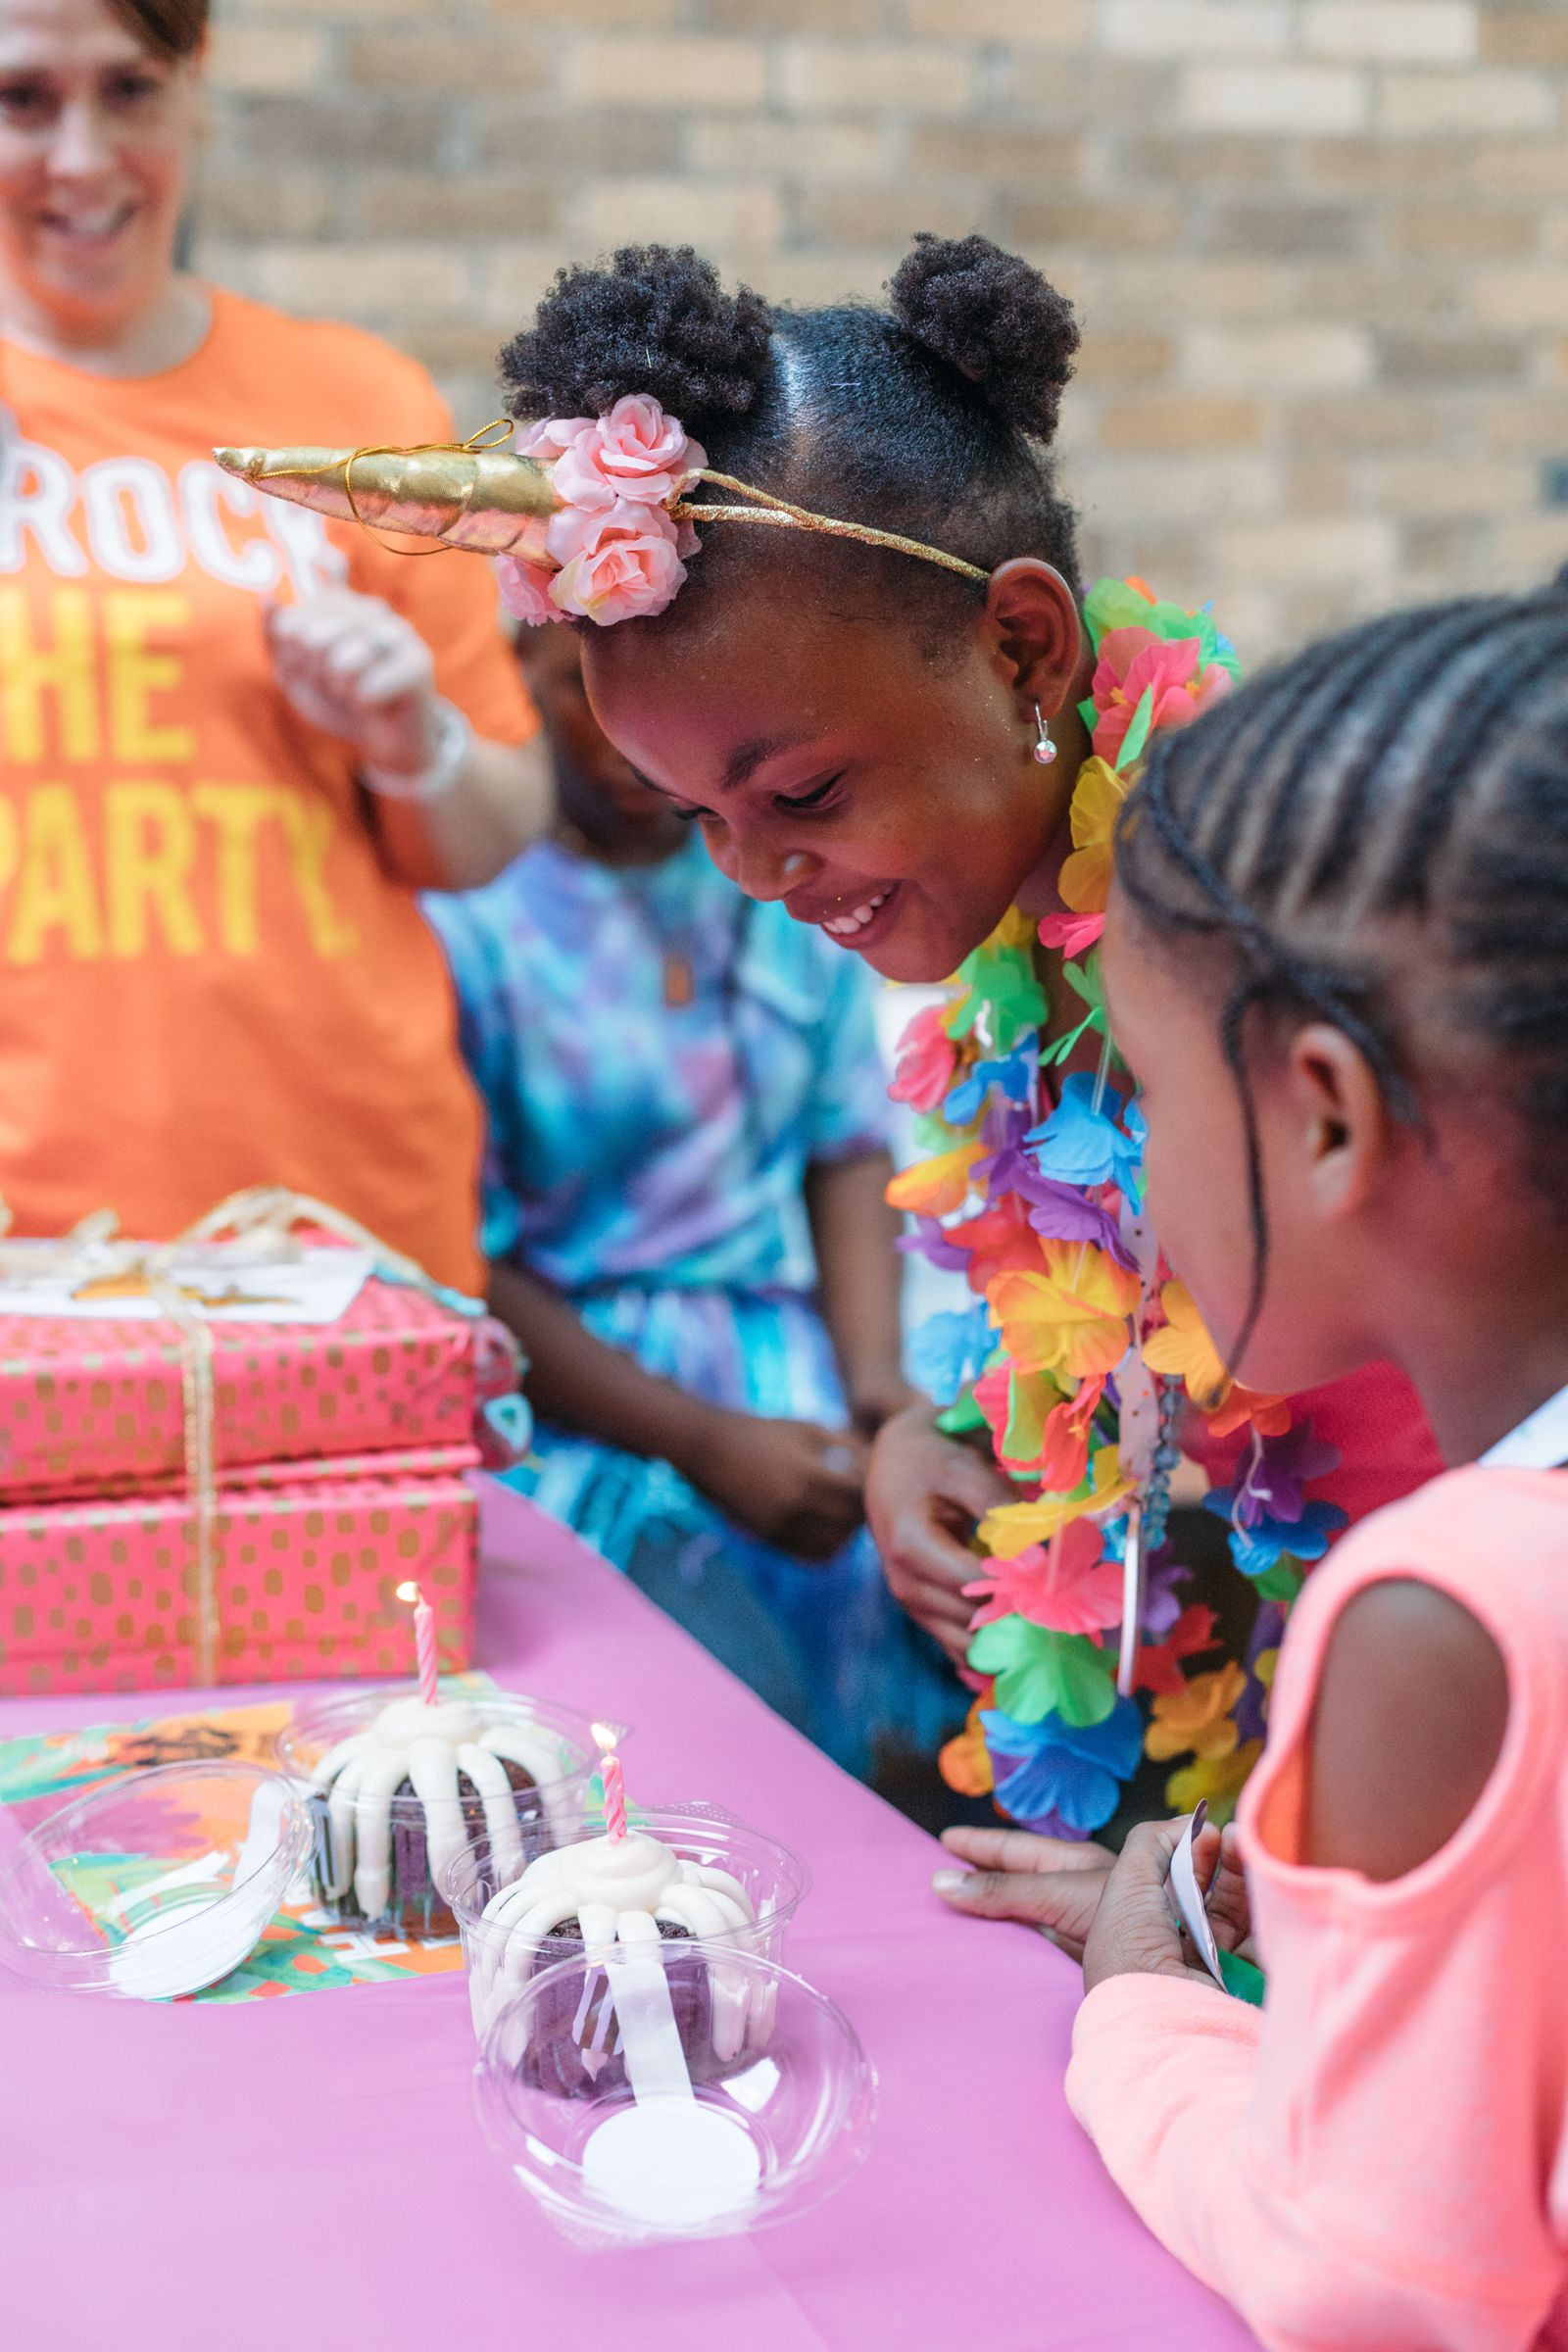 Main Event Partners with The Birthday Party Project to Bring Joy  to Children Experiencing Homelessness